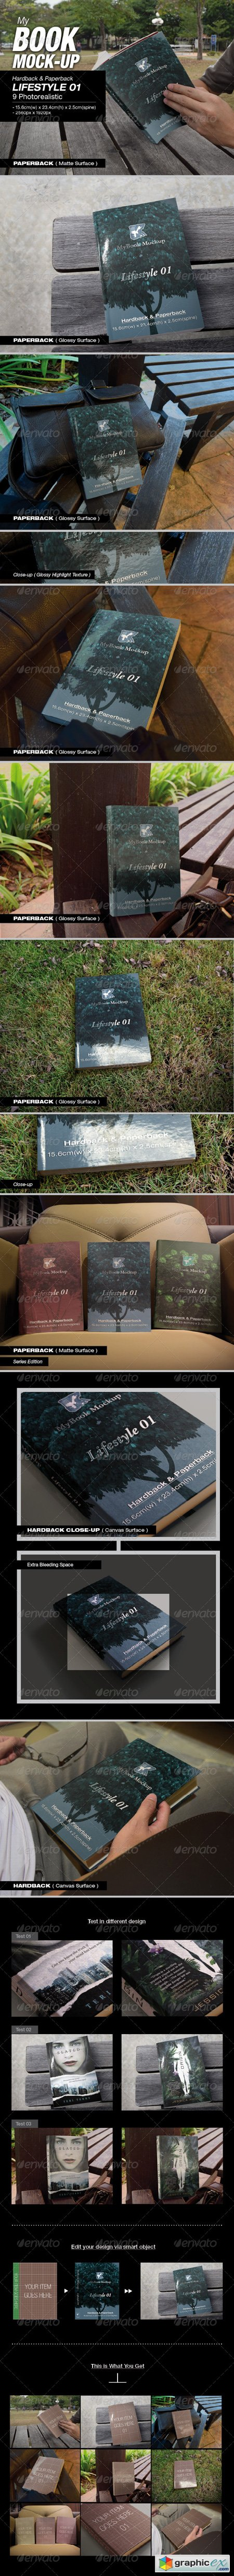 MyBook Mock-up - Lifestyle 01 8511725